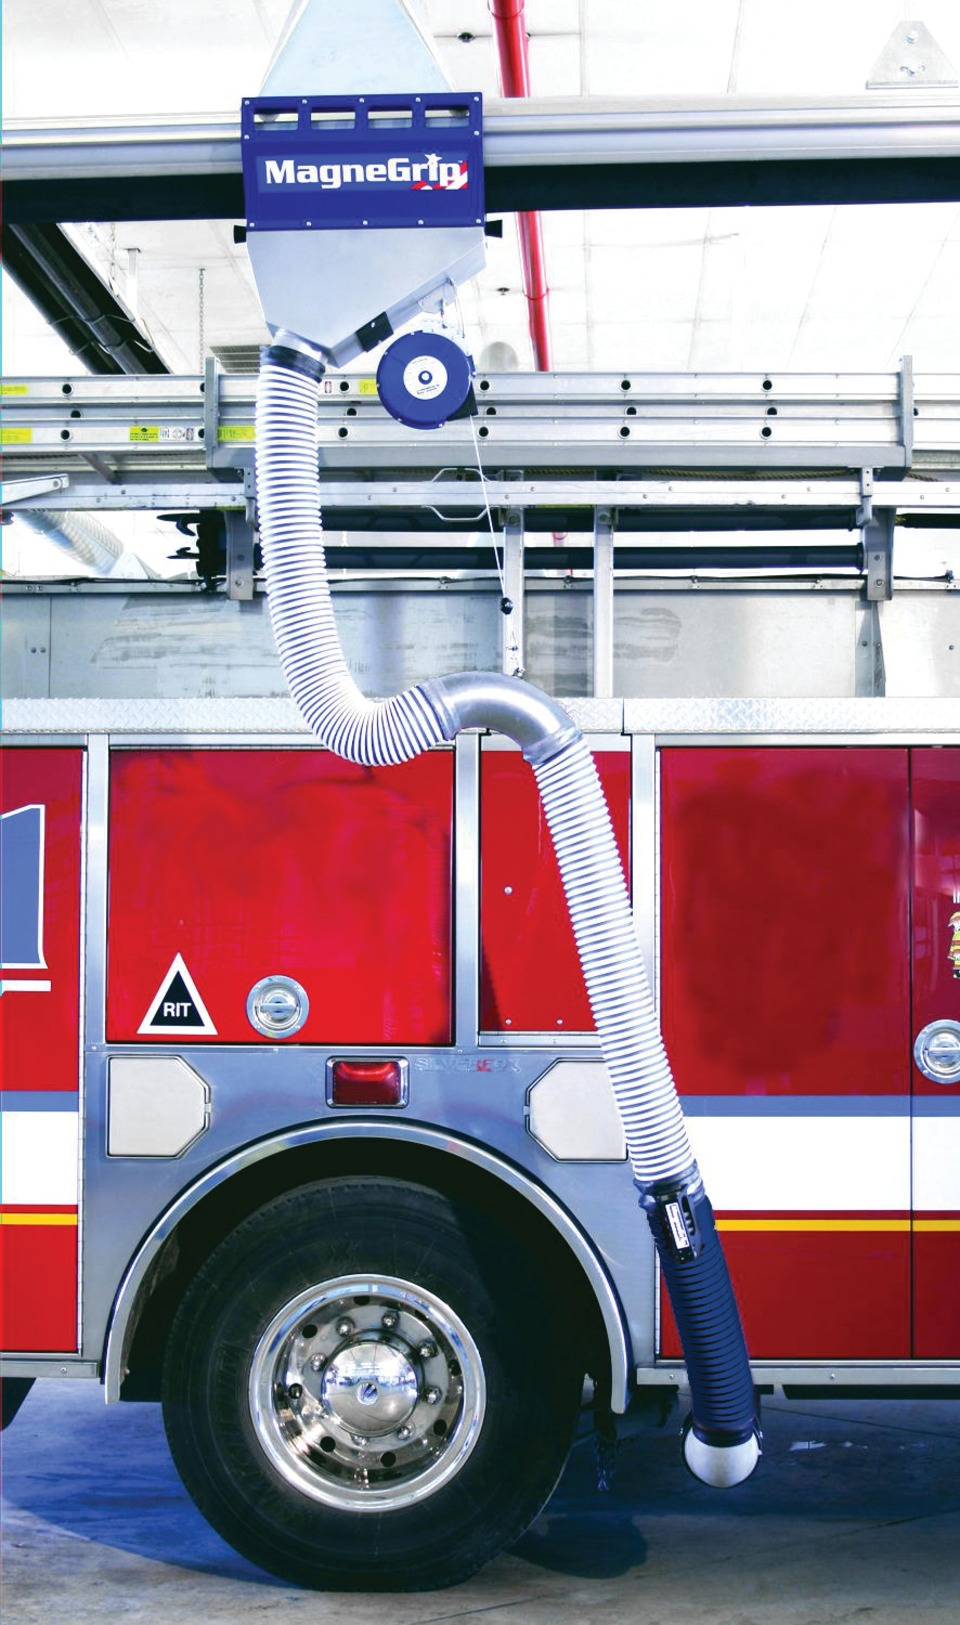 Magnegrip Fire Station Exhaust Removal Systems